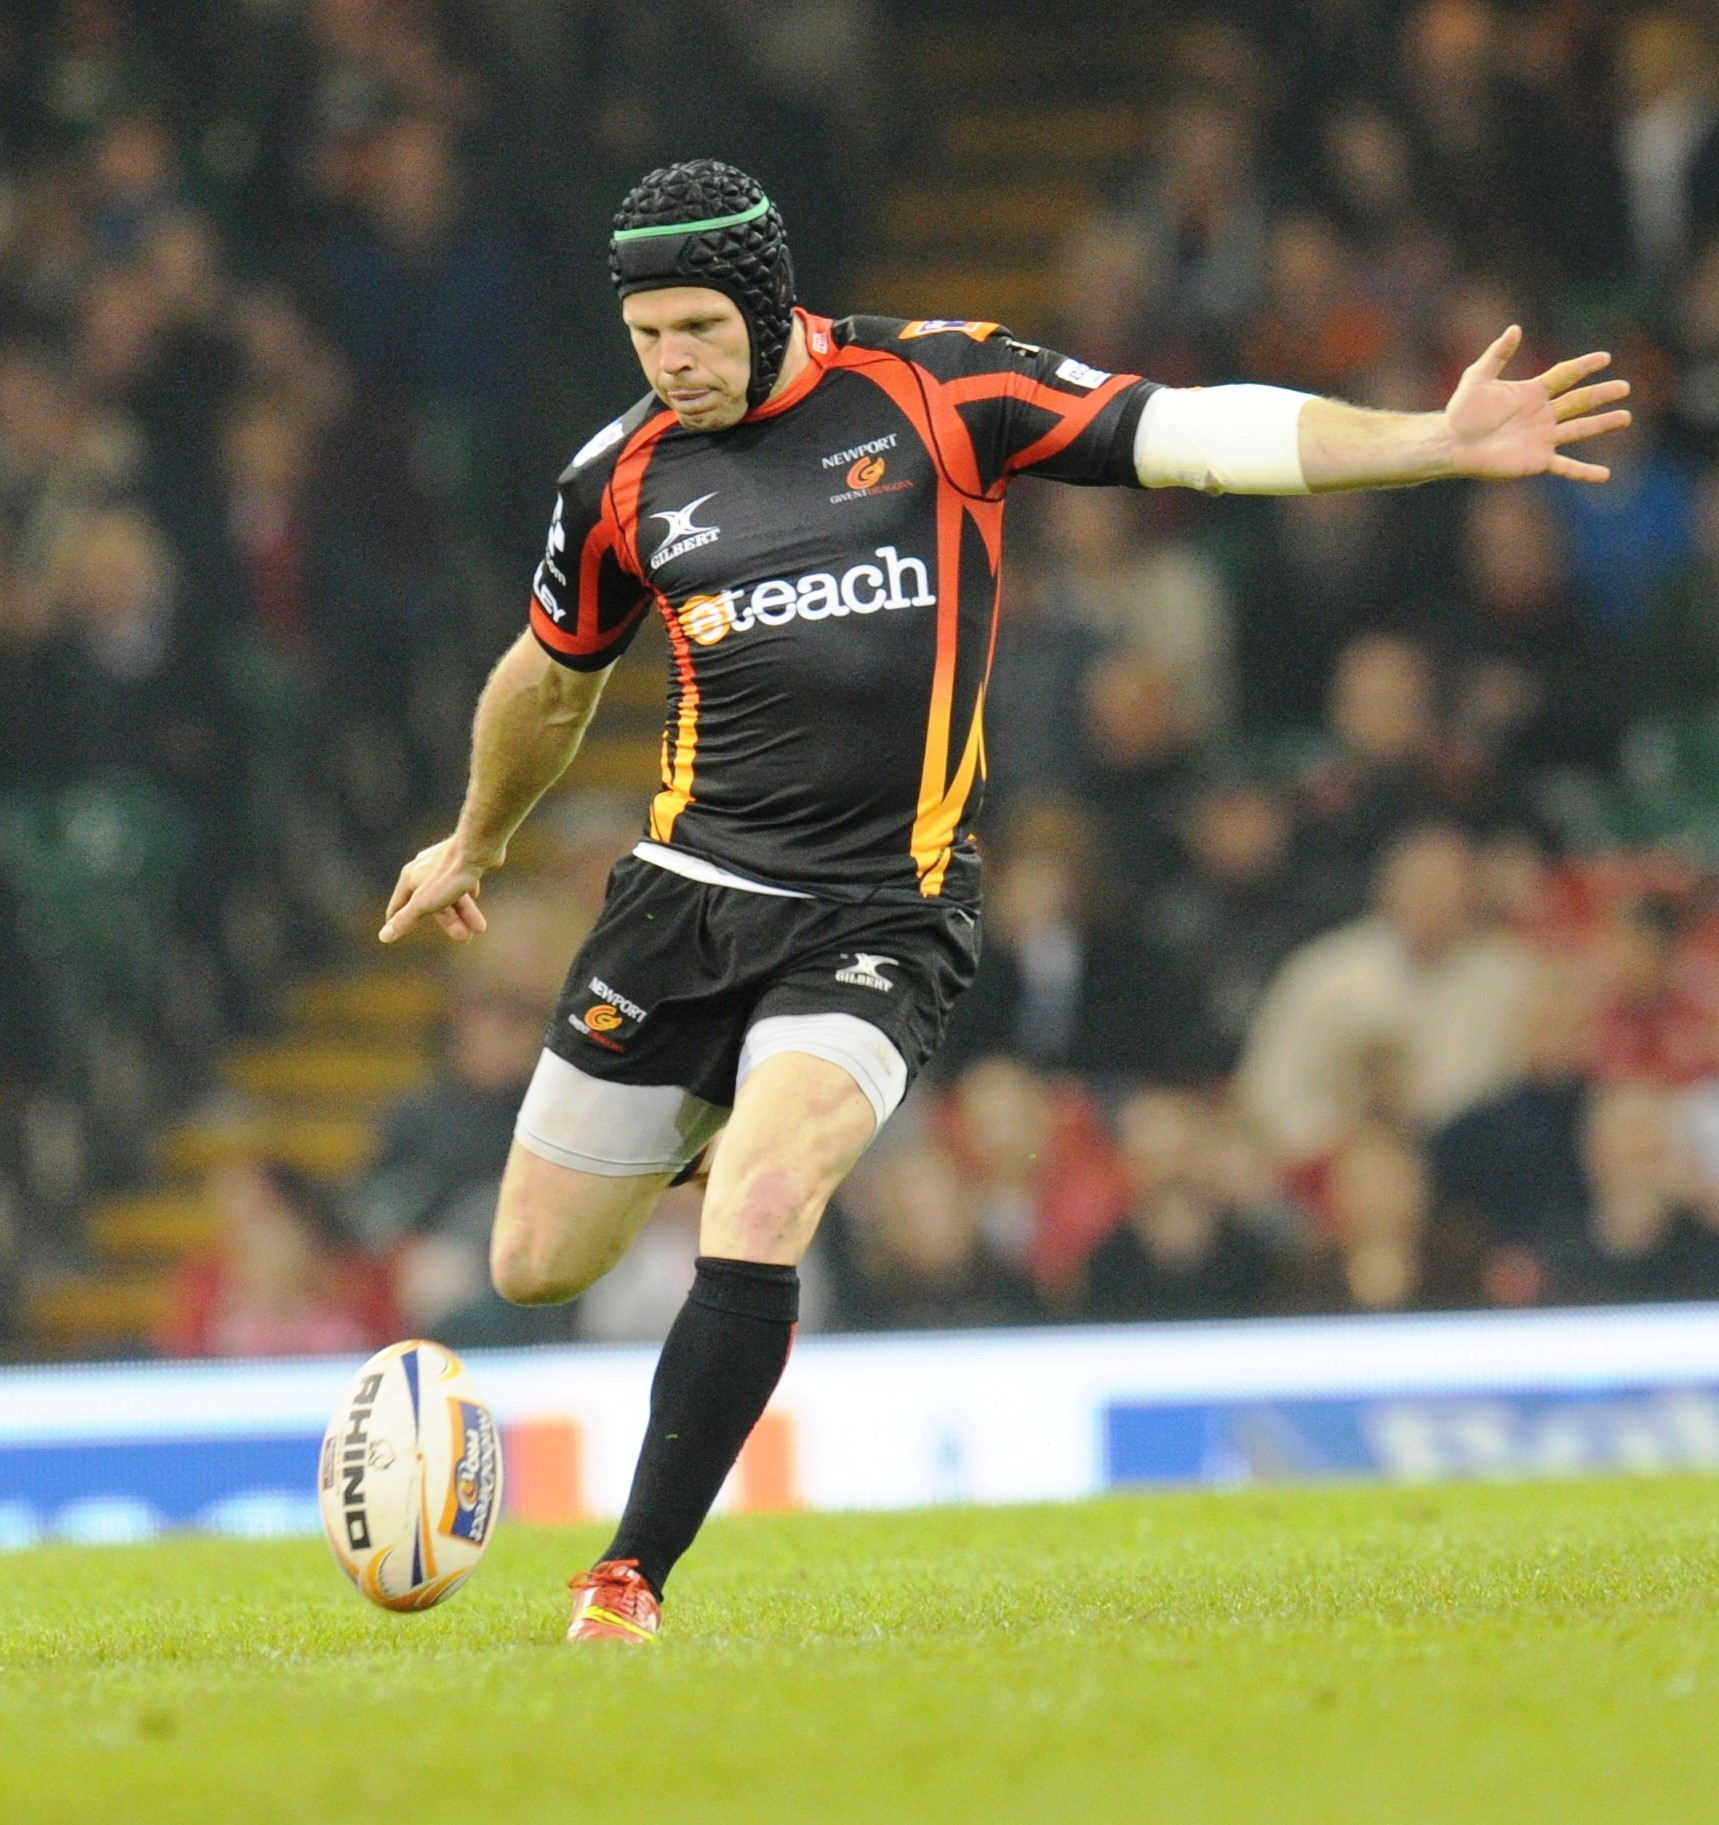 Dragons come up short at Millennium Stadium